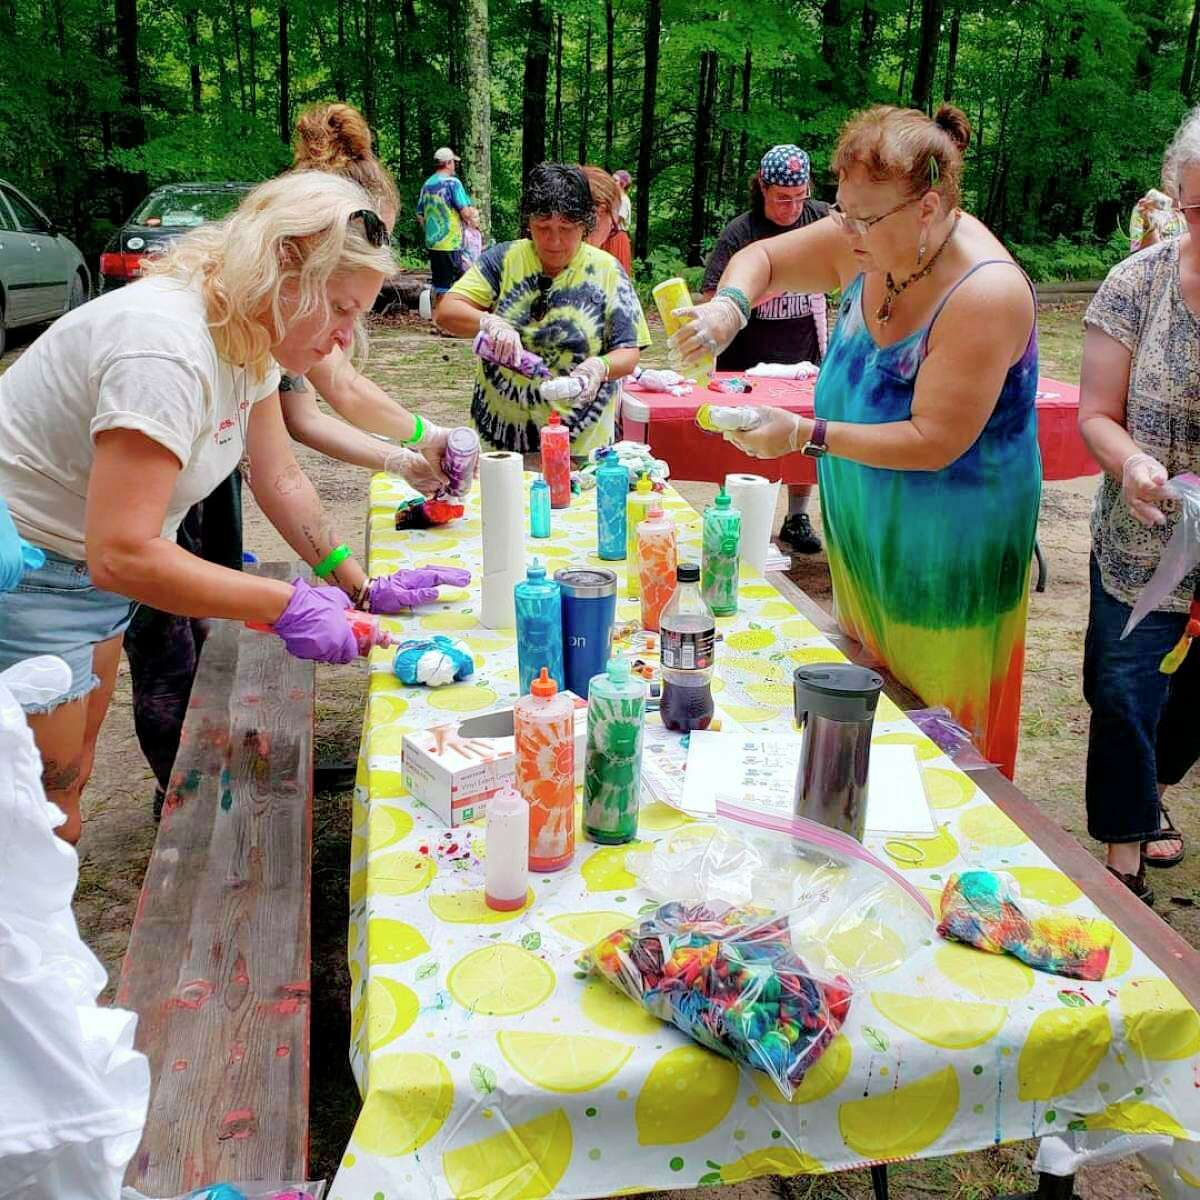 The Forest Trail Music Festival in Free Soil featured withlive folk, bluegrass, Americana roots music performances as well as activities like a tie-dye station where attendees could make their own tie-dyed clothing. (Arielle Breen/News Advocate)